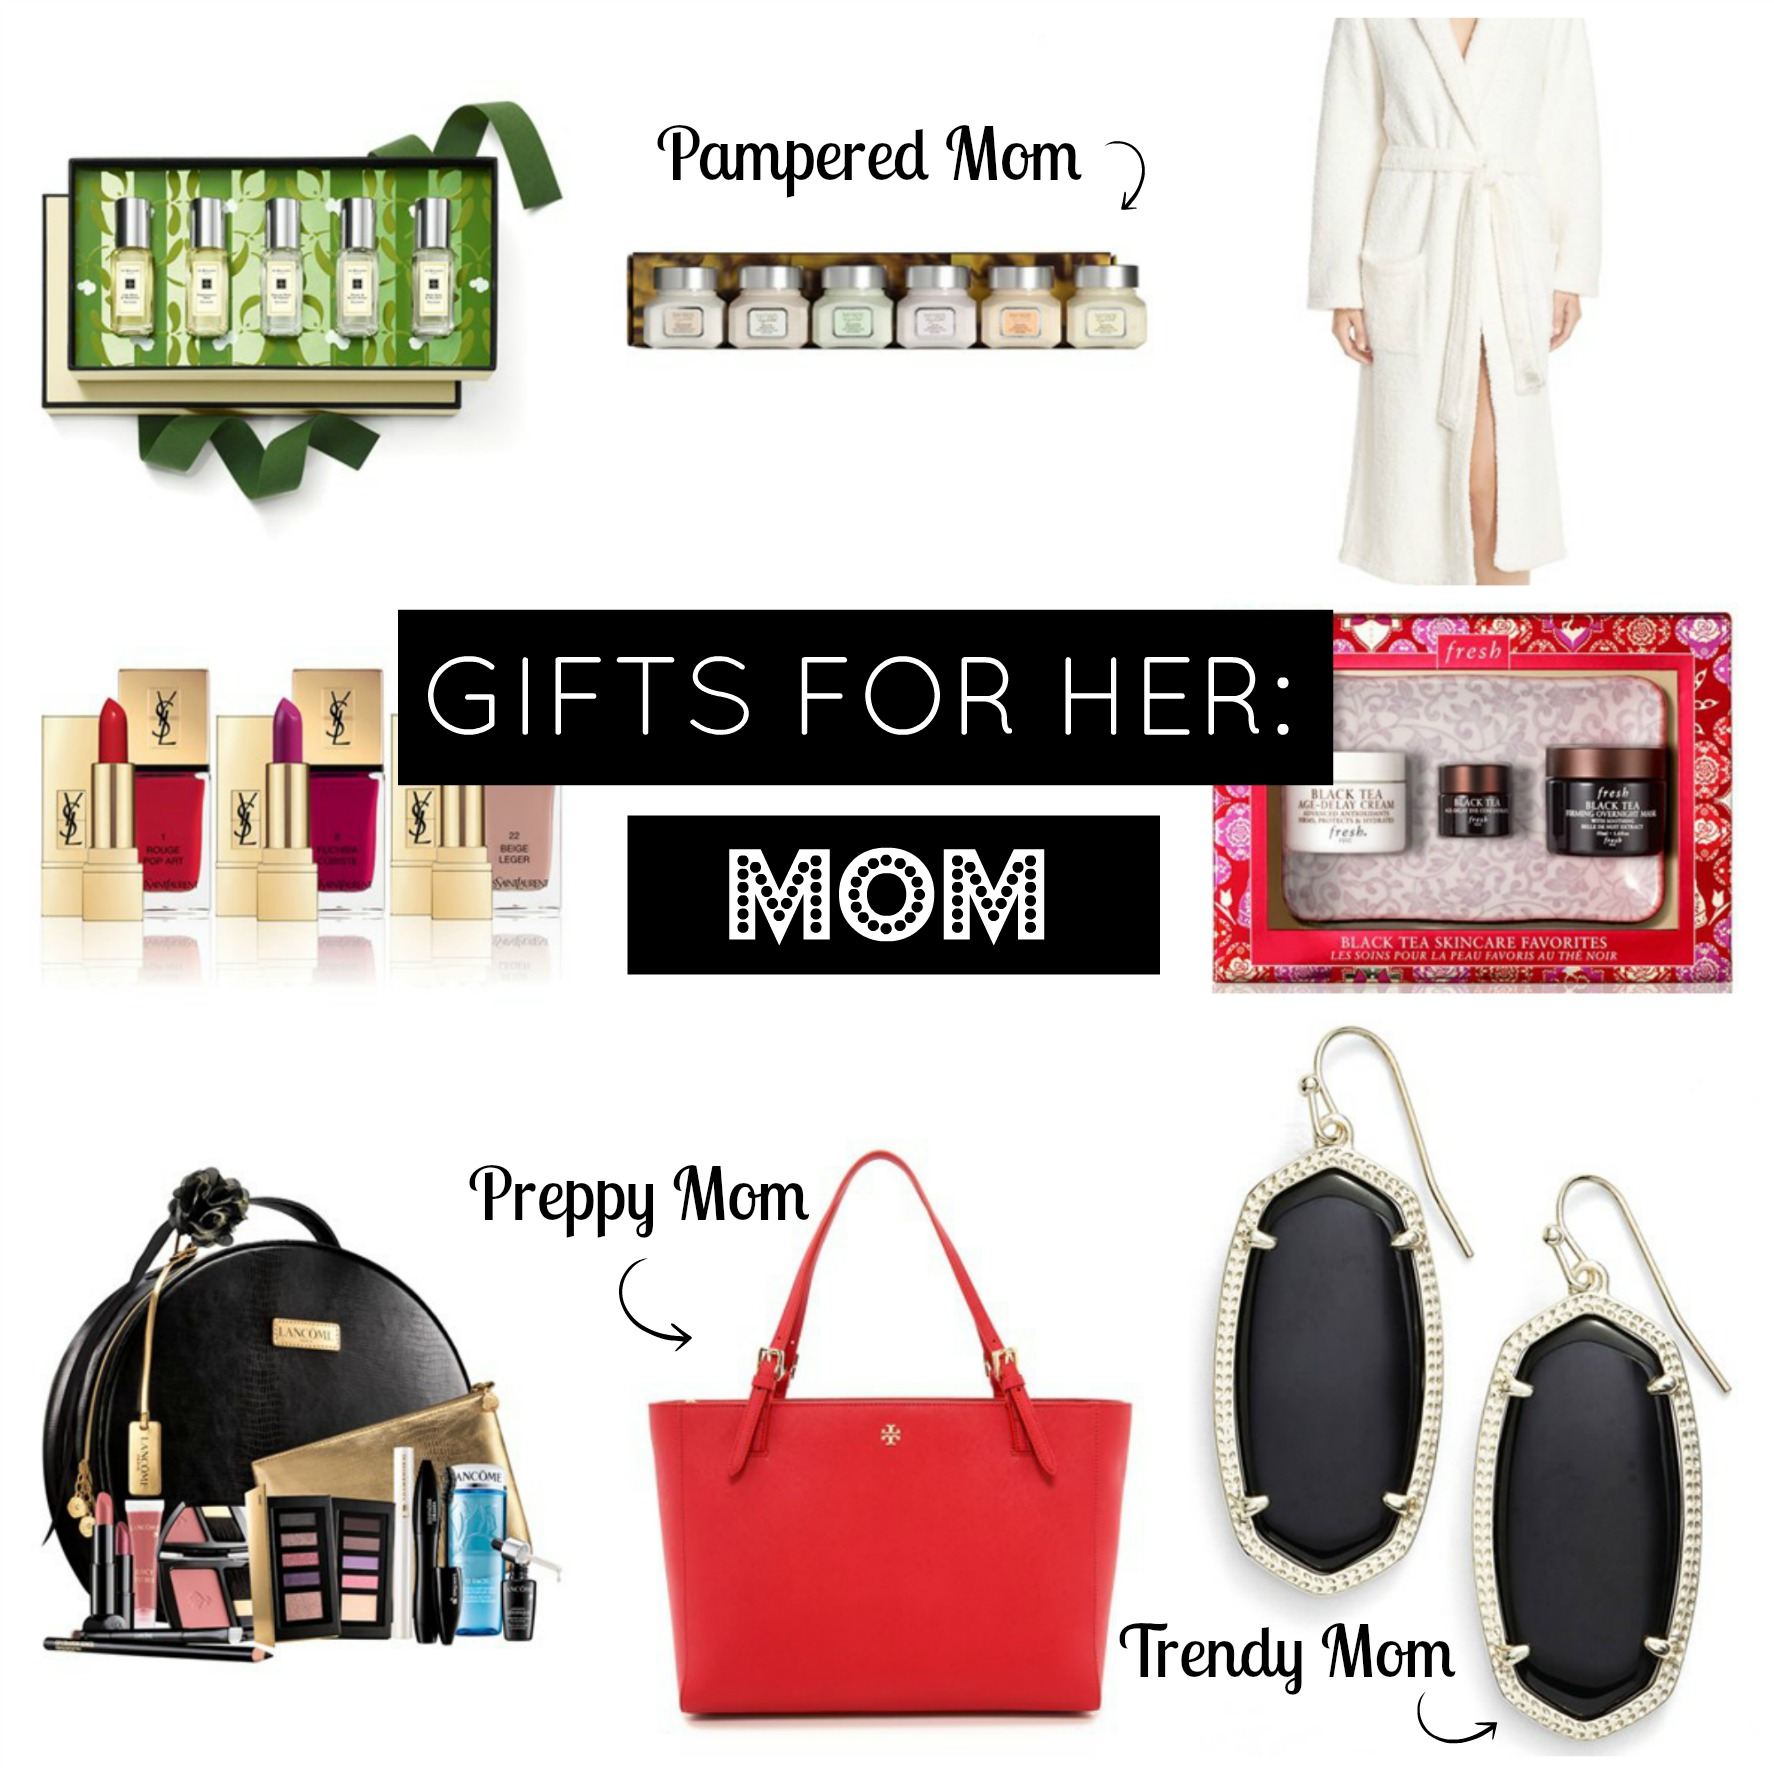 Holiday gift guide gifts for mom airelle snyder Good ideas for christmas gifts for your mom